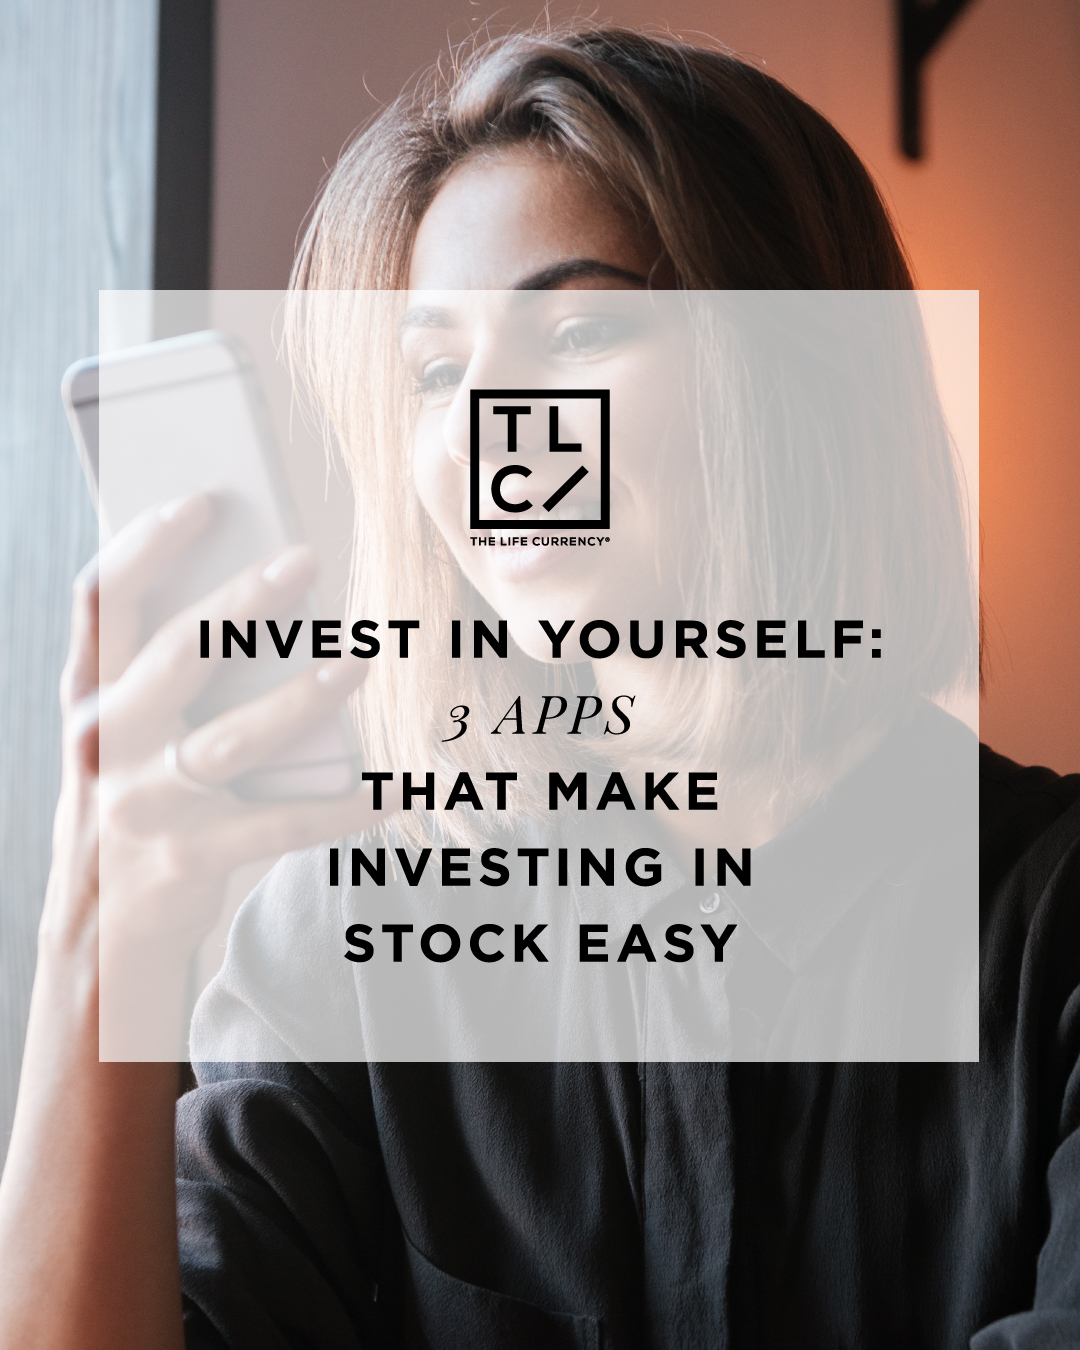 Invest in Yourself: 3 Apps That Make Investing in Stock Easy